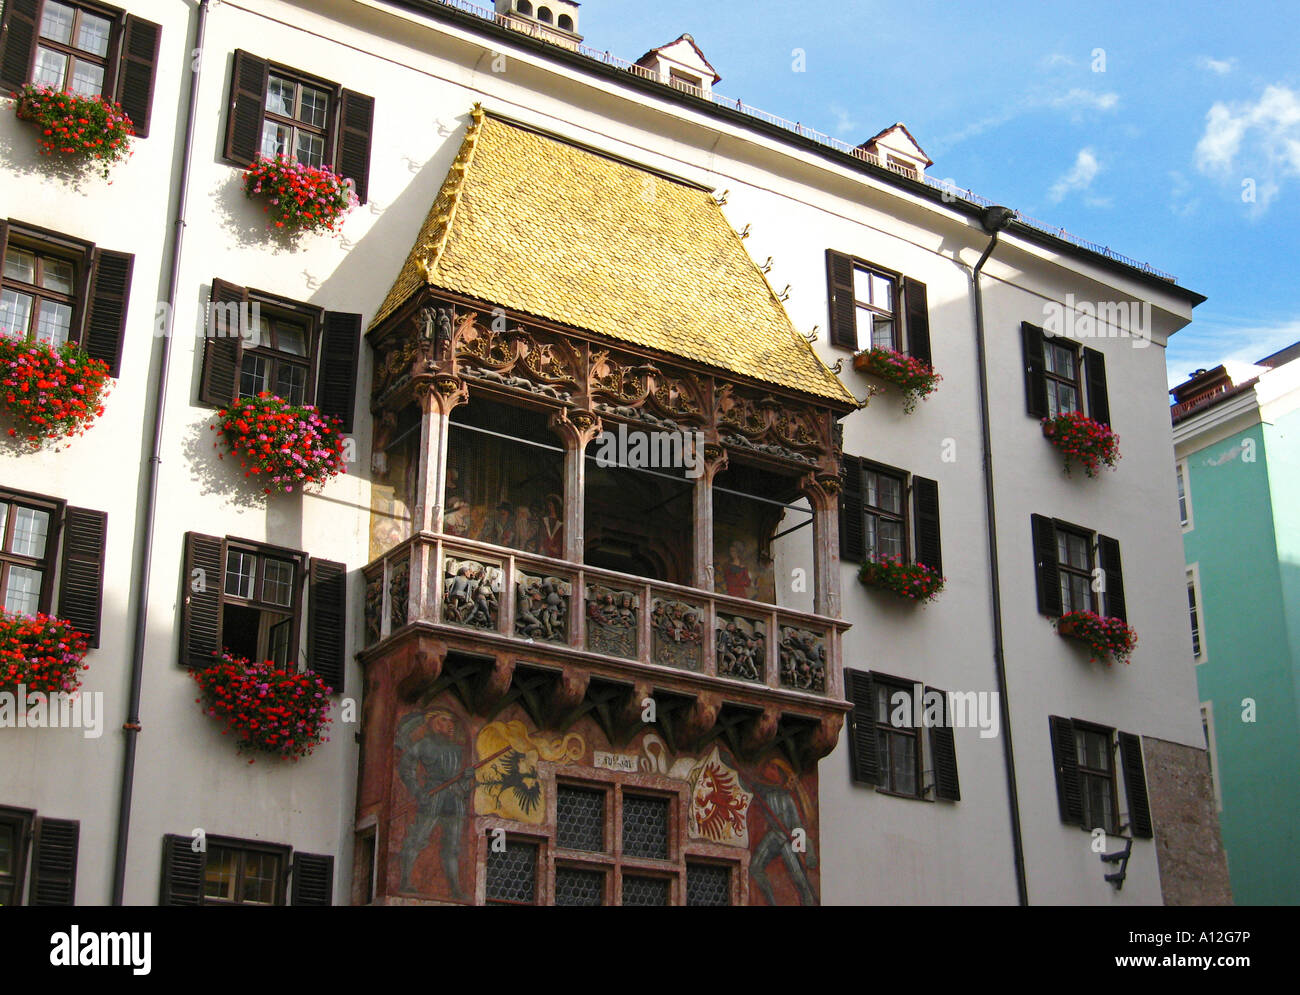 Old Town Golden Roof in Innsbruck Austria & Old Town Golden Roof in Innsbruck Austria Stock Photo Royalty ... memphite.com